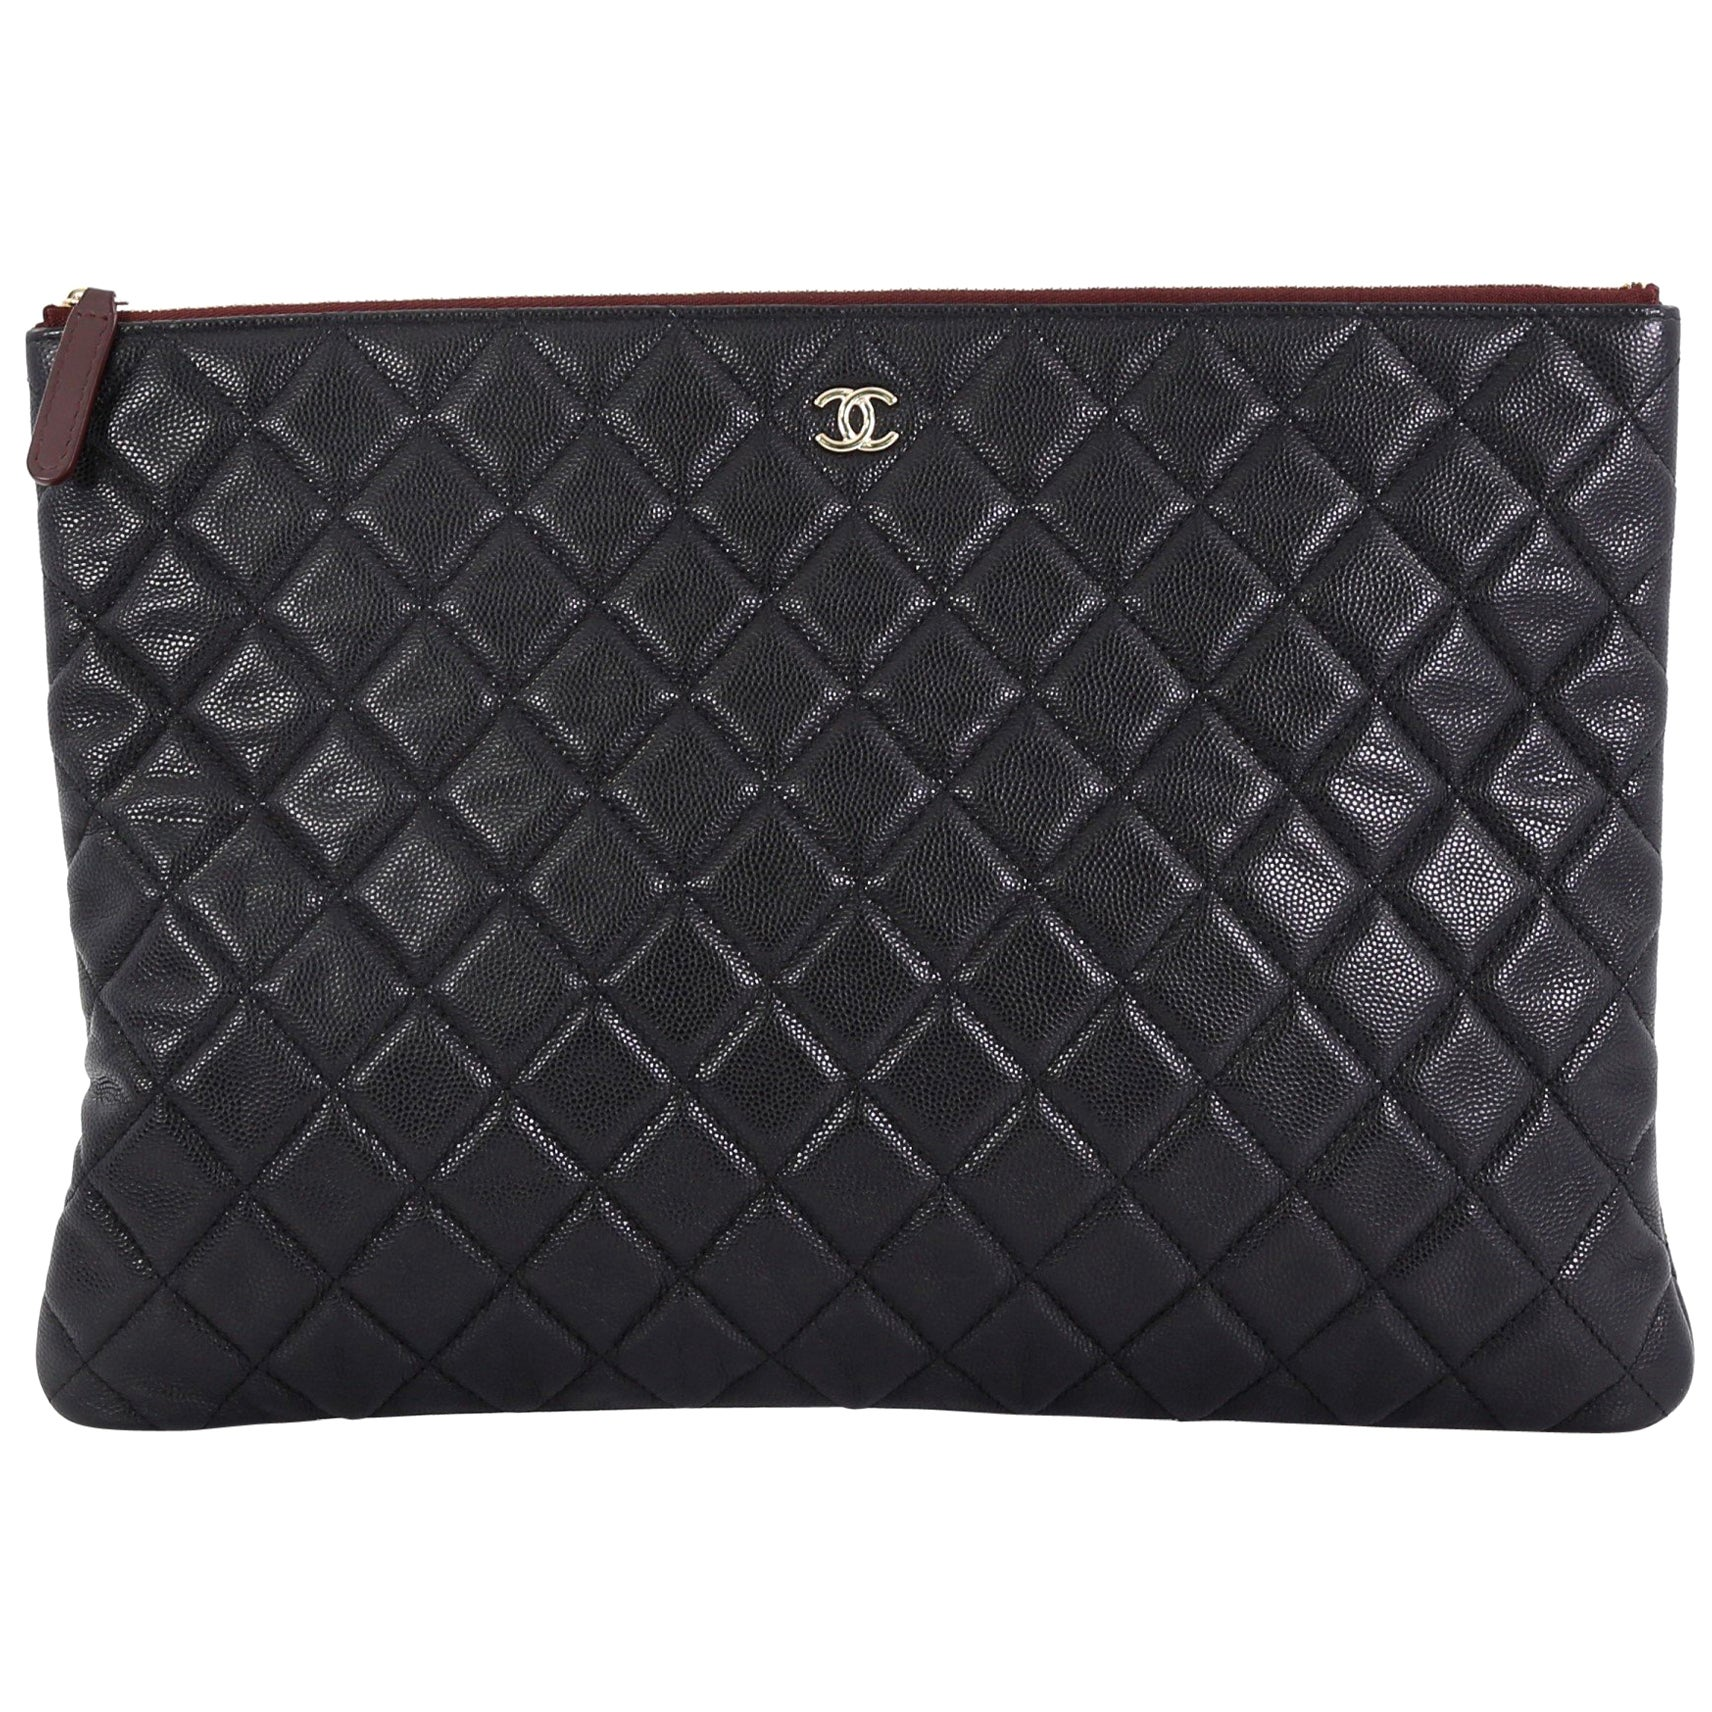 52b41a5aaed3e2 Chanel O Case Clutch Quilted Caviar Large at 1stdibs